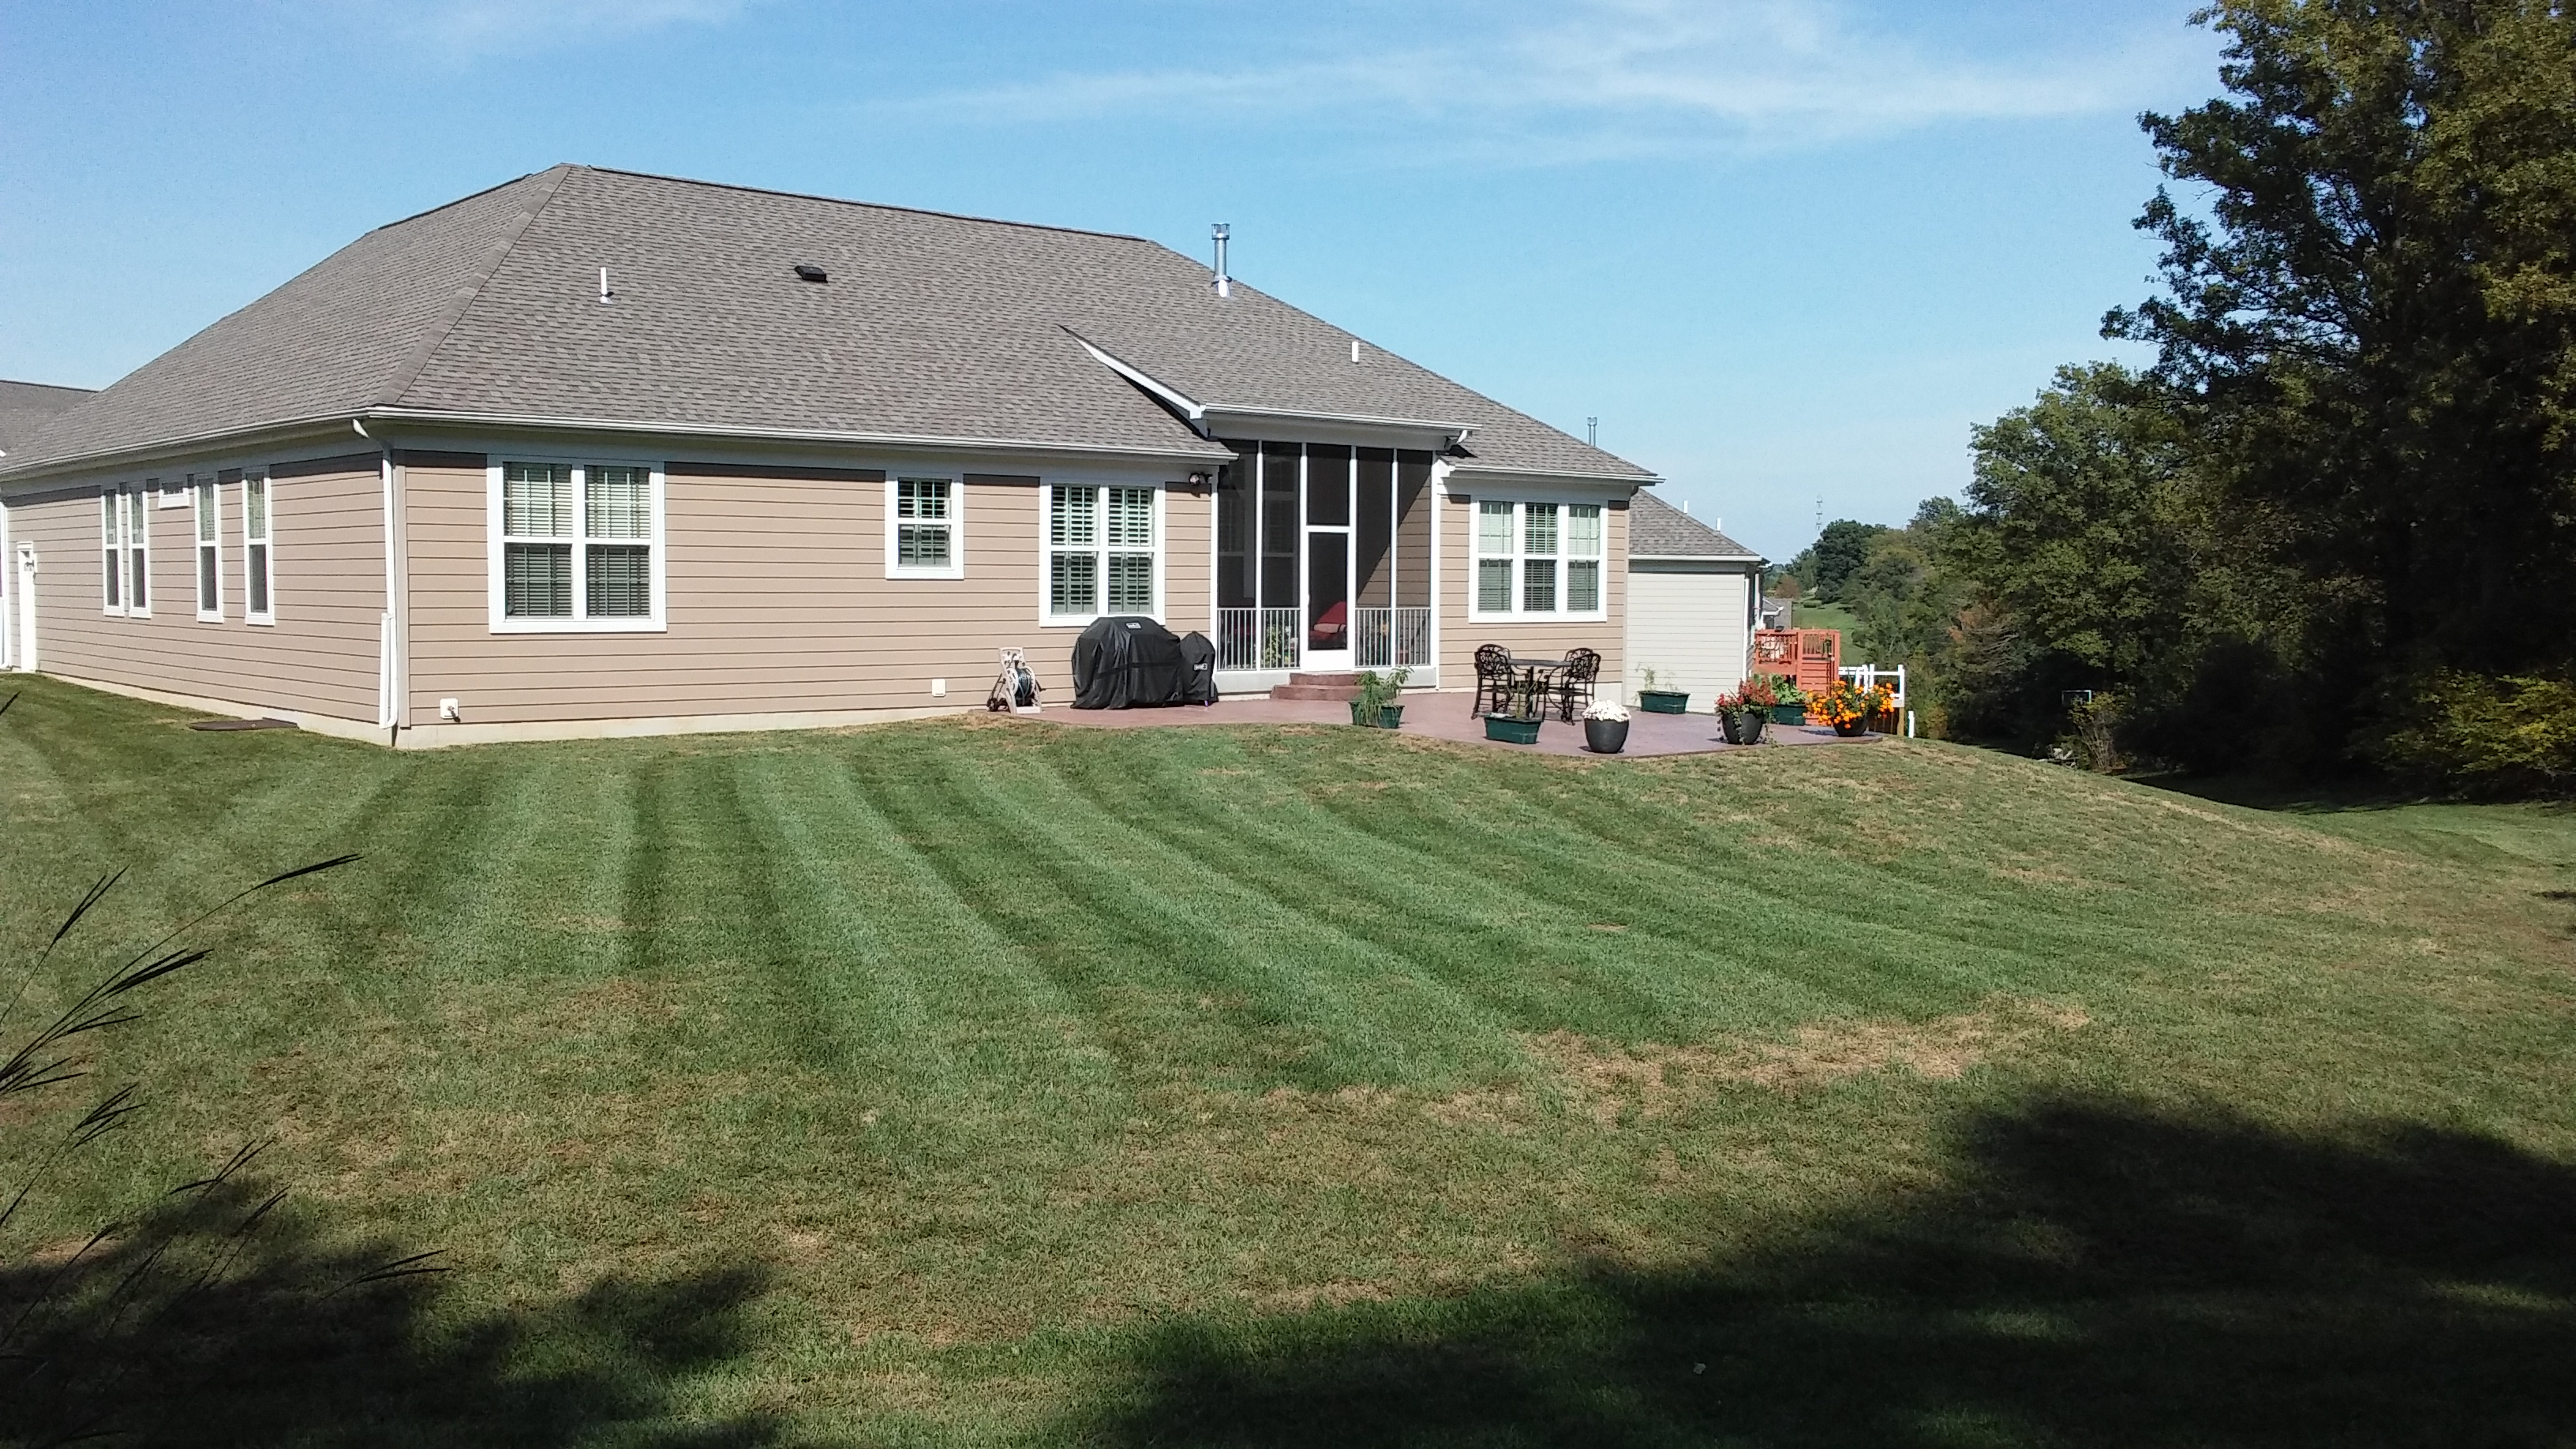 Yard mowing company in Pevely, MO, 63040